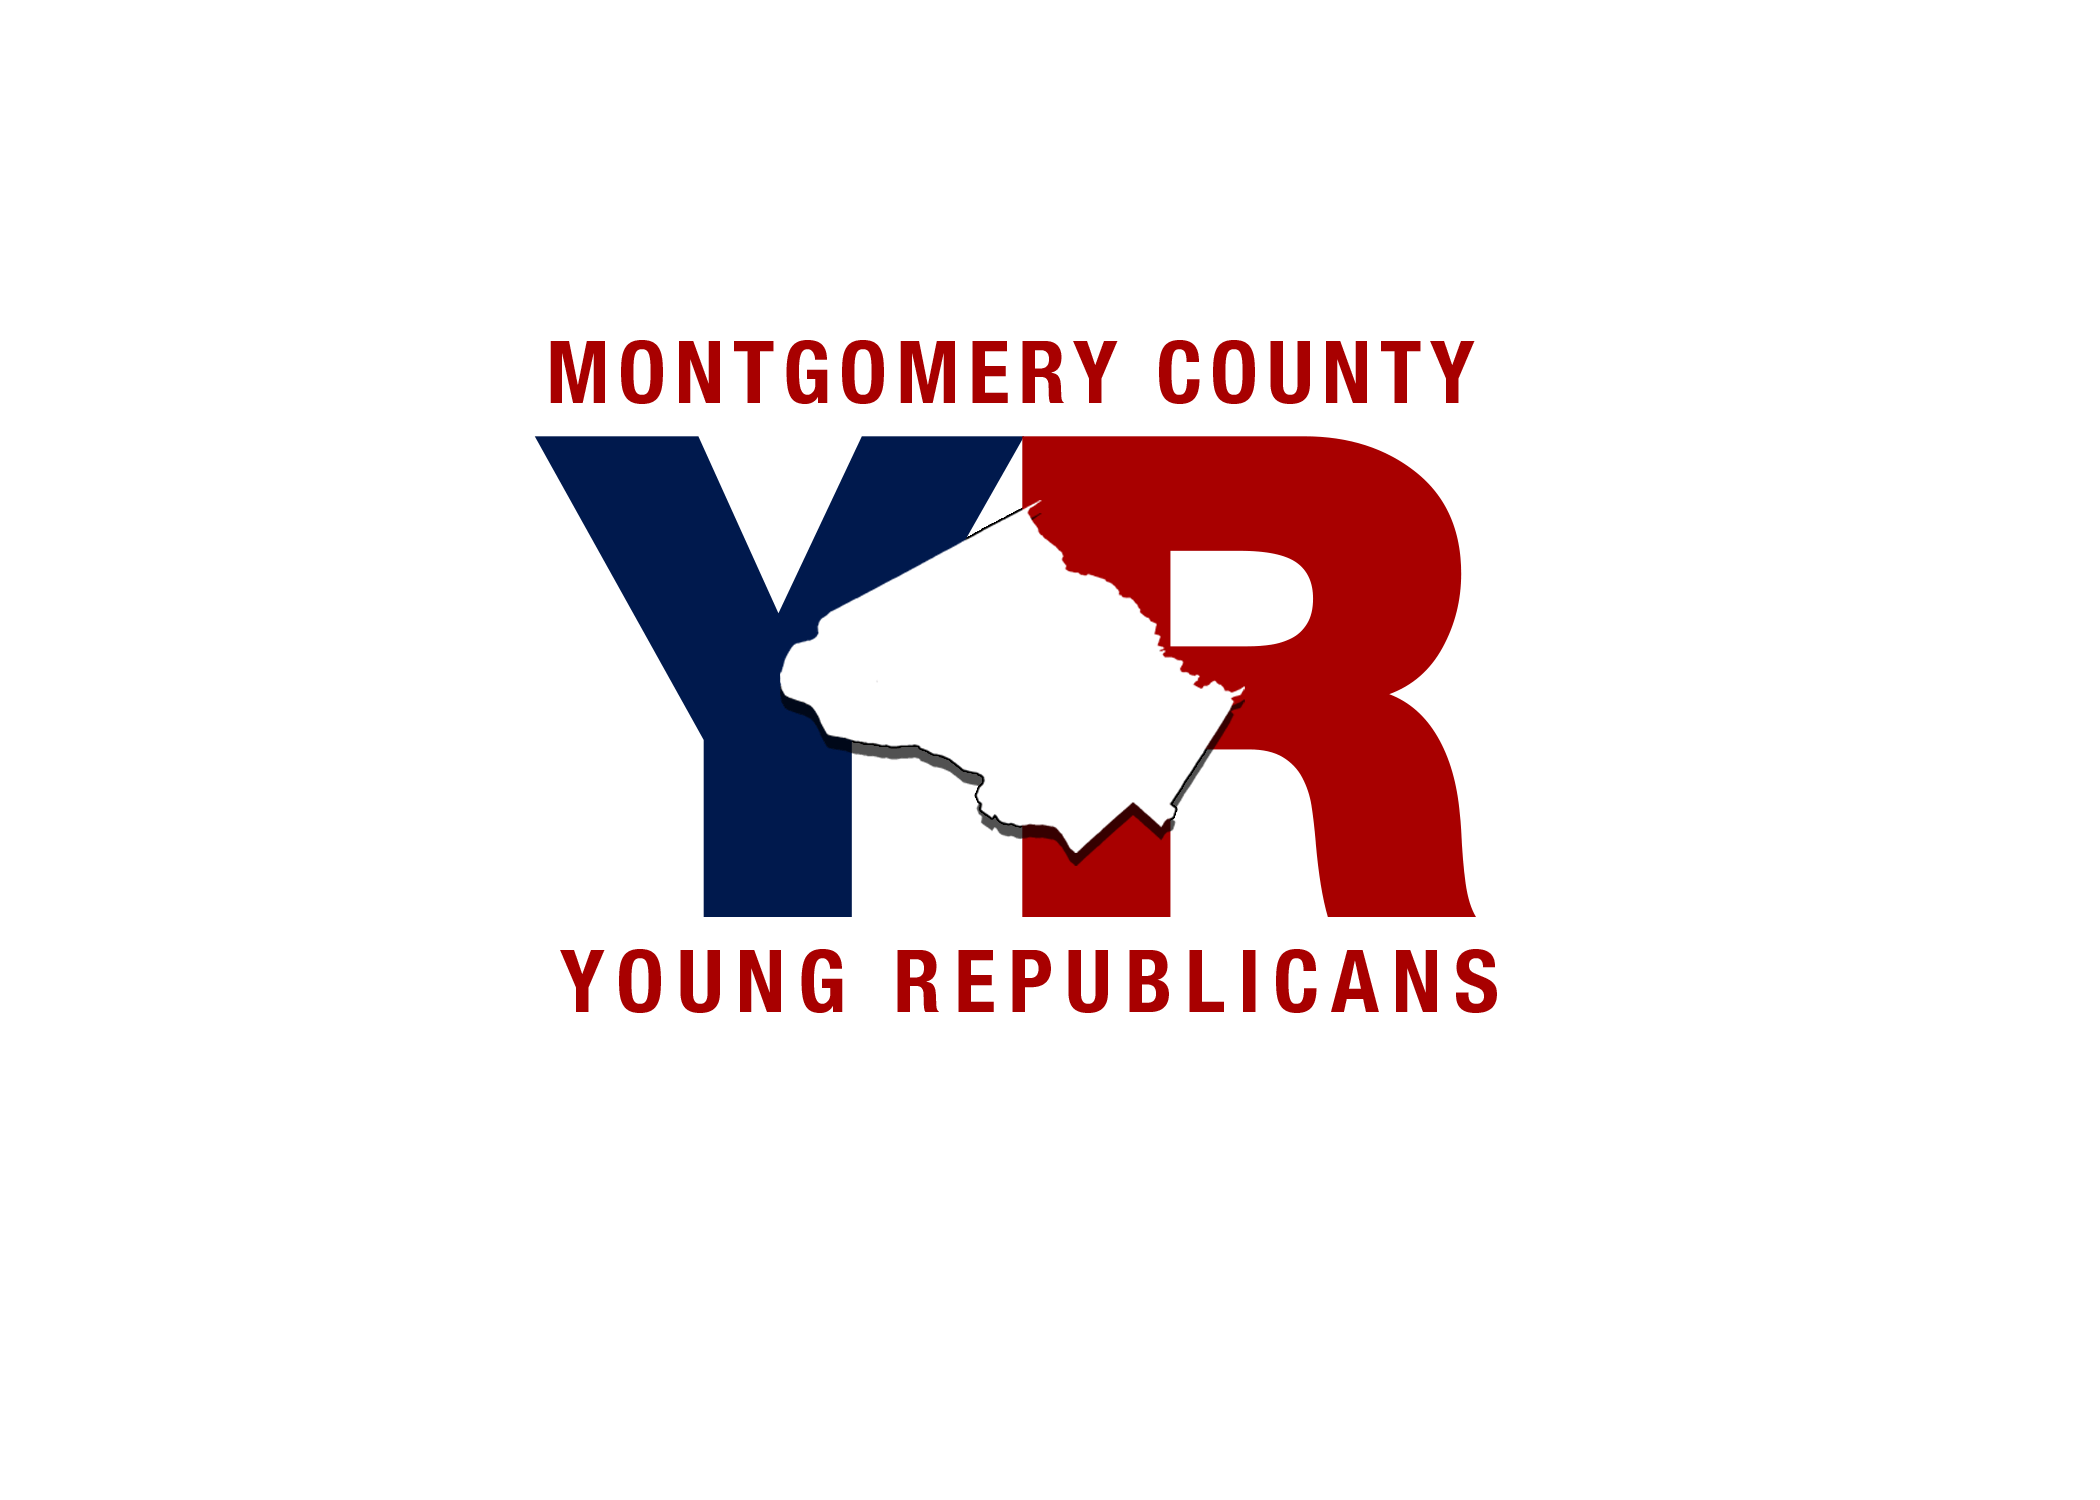 Logo for the Montgomery County young Republicans